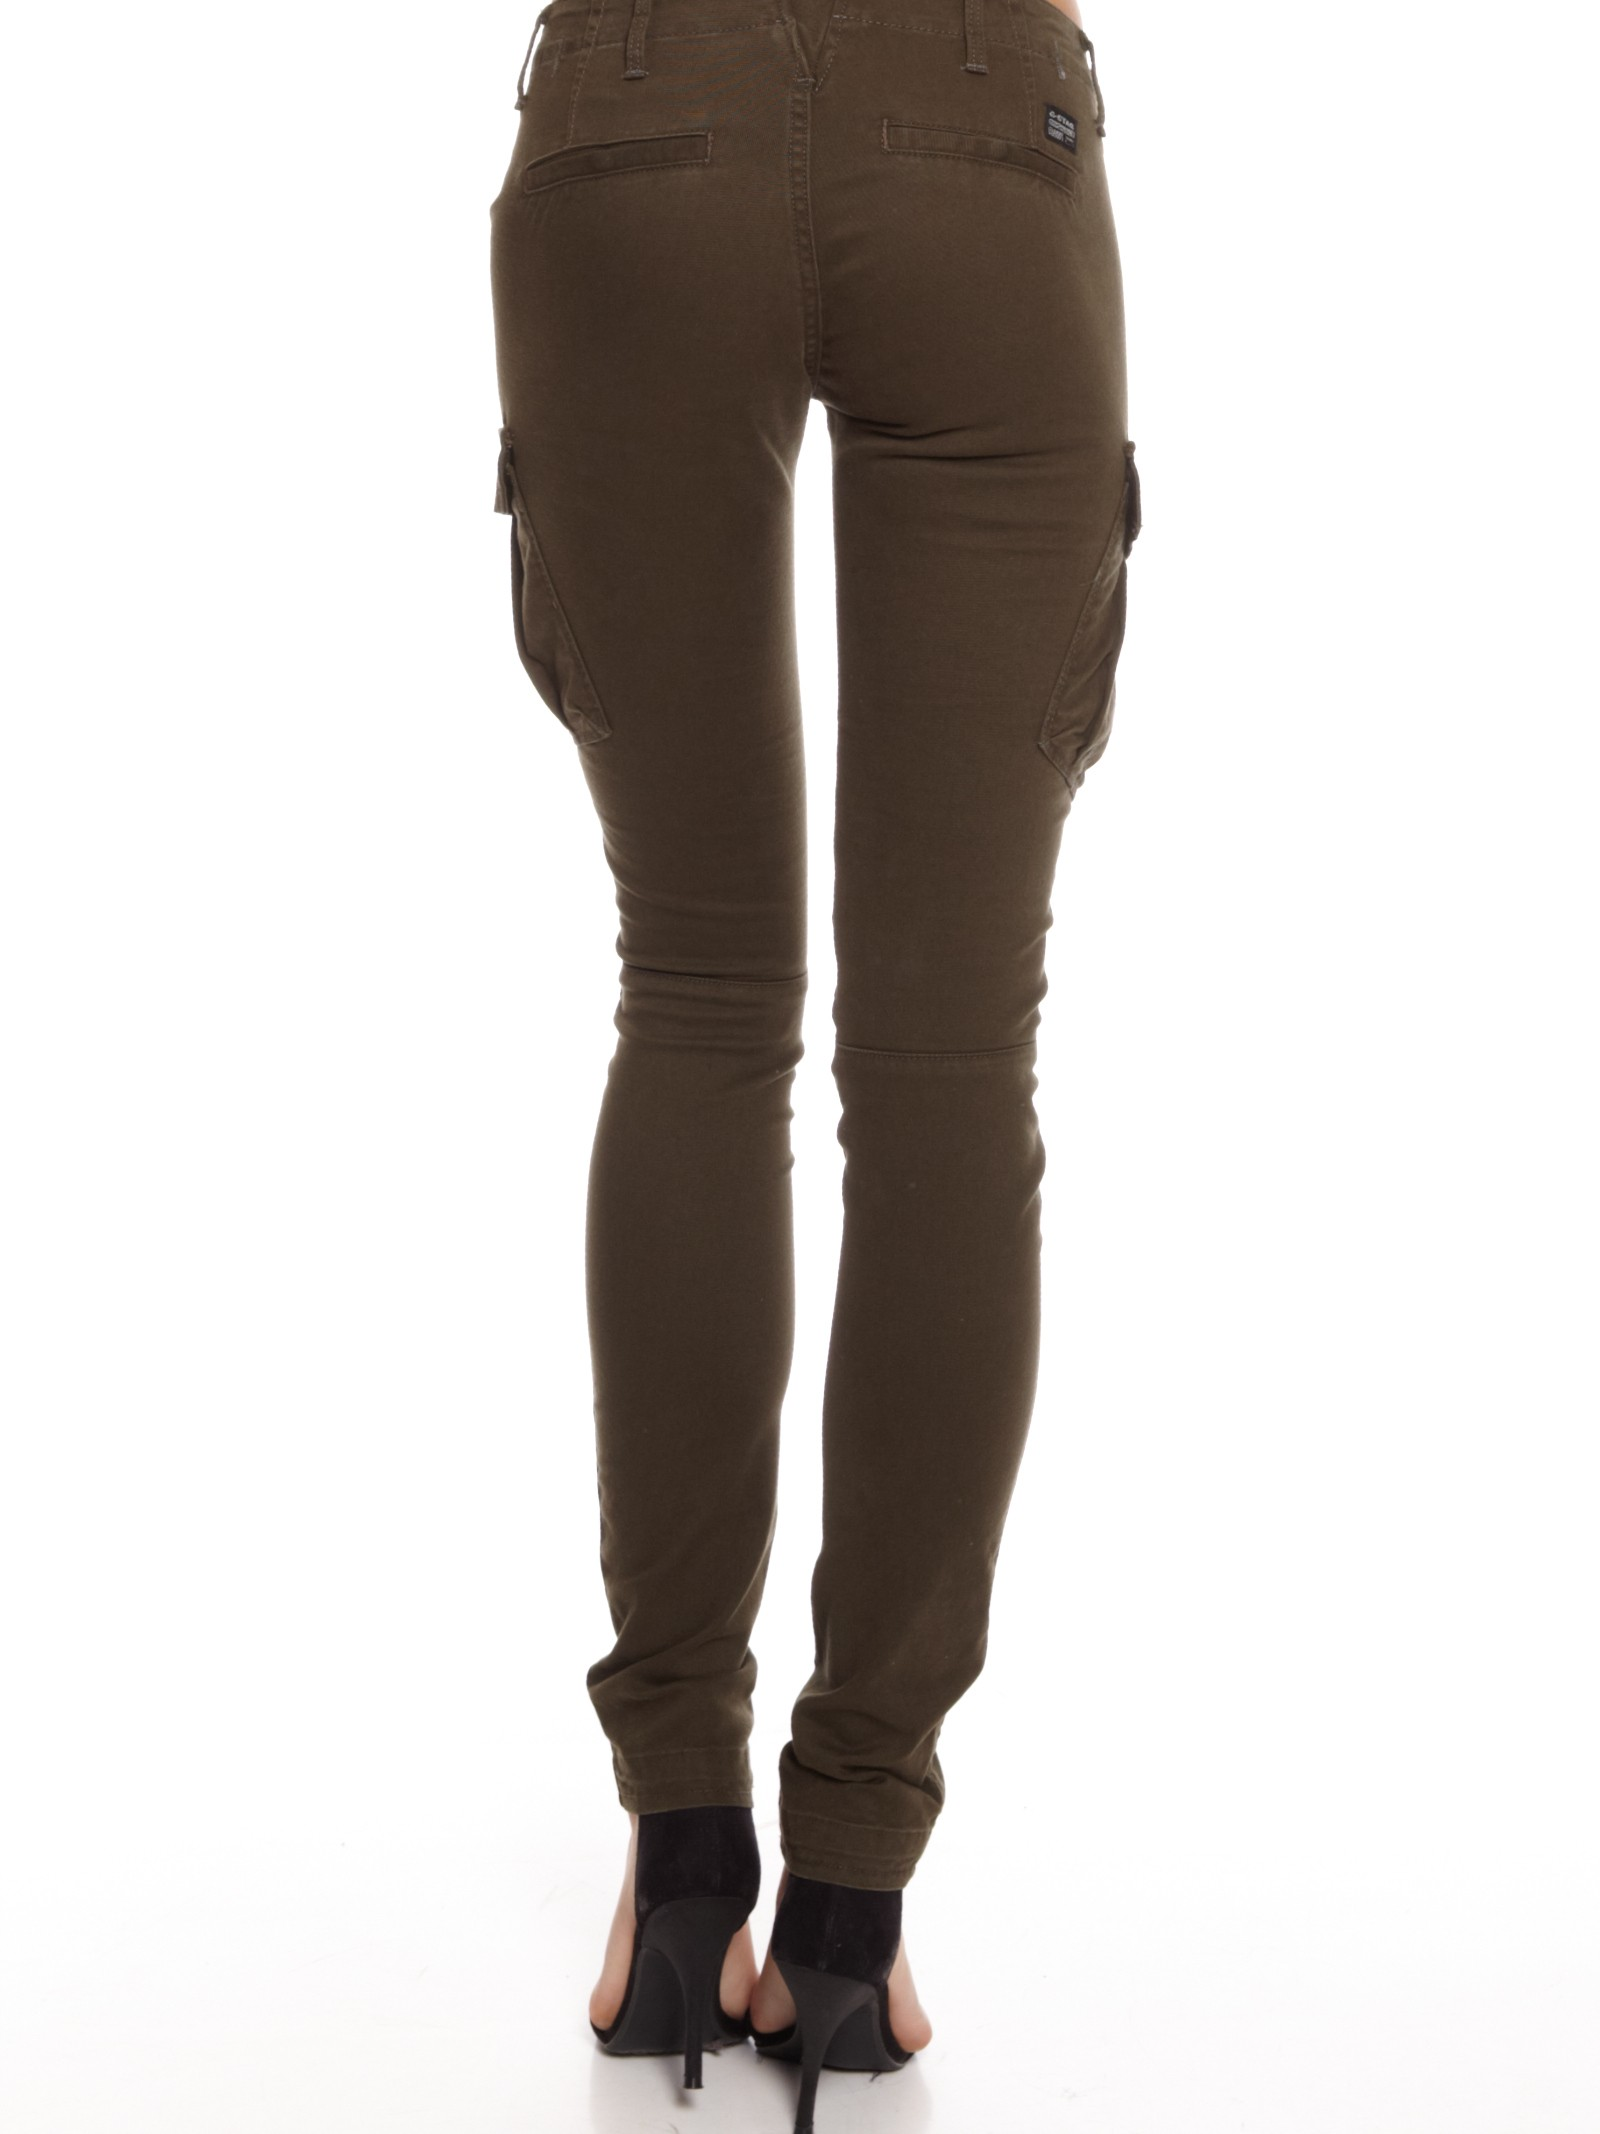 g star womens cargo pants photo - 1